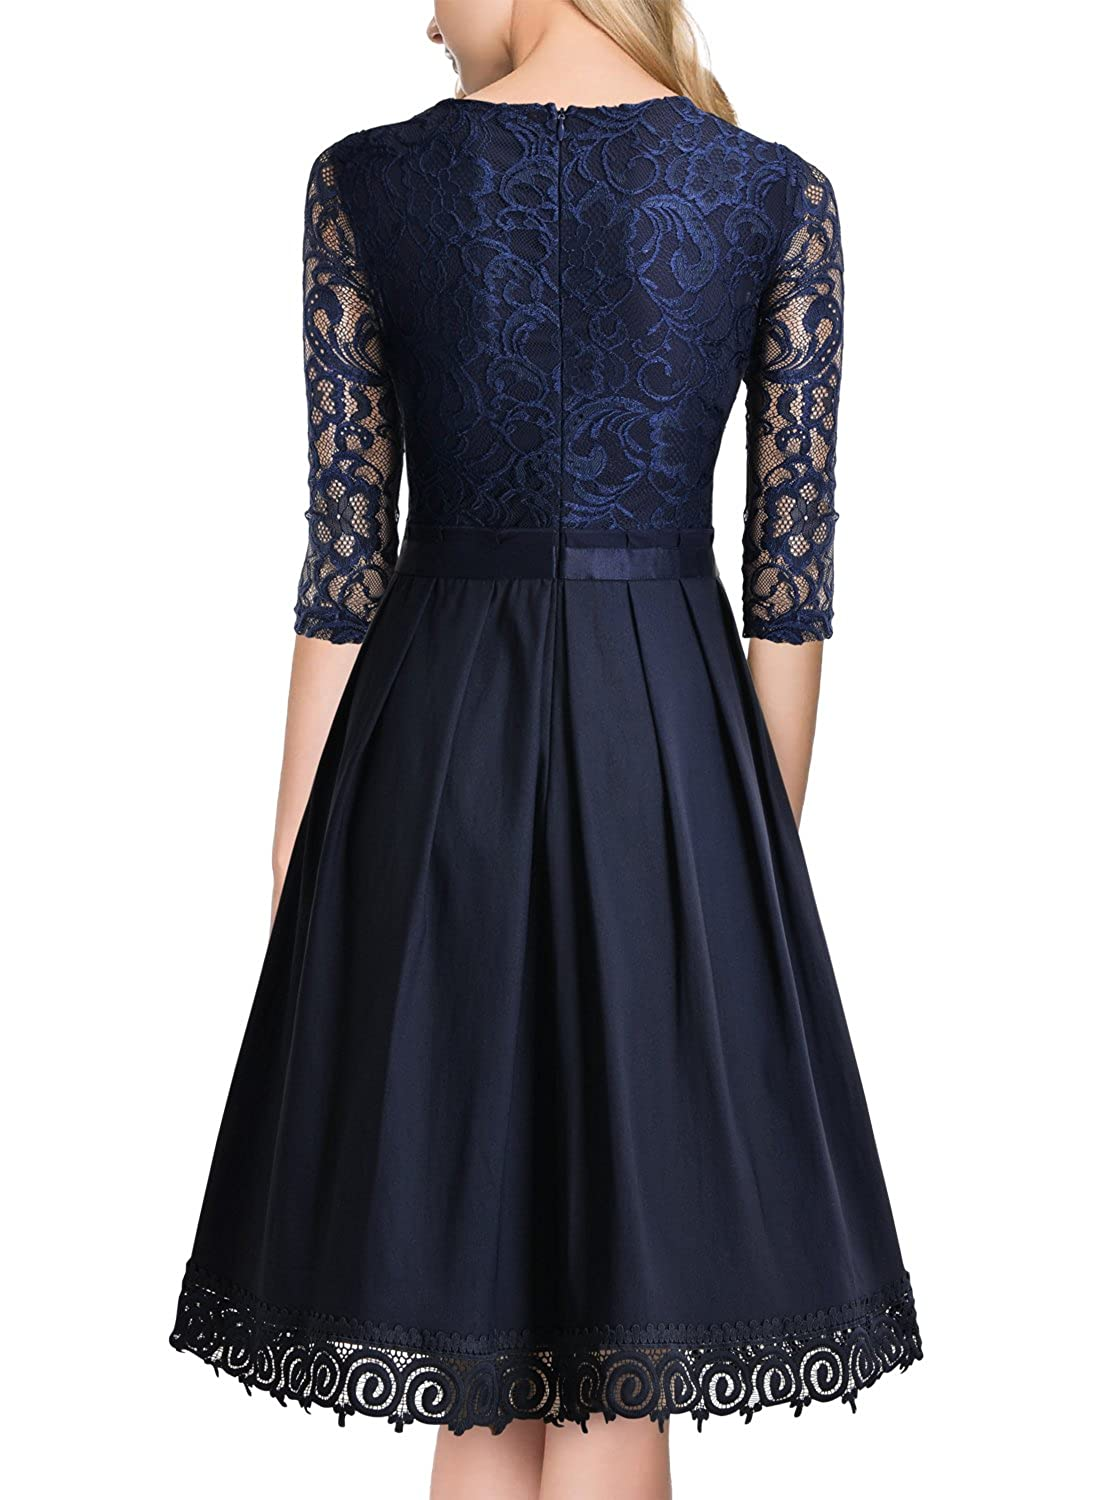 b56bd1c76d99 Amazon.com: MISSMAY Women's Vintage Half Sleeve Floral Lace Cocktail Party  Pleated Swing Dress Navy Blue XX-Large: Clothing